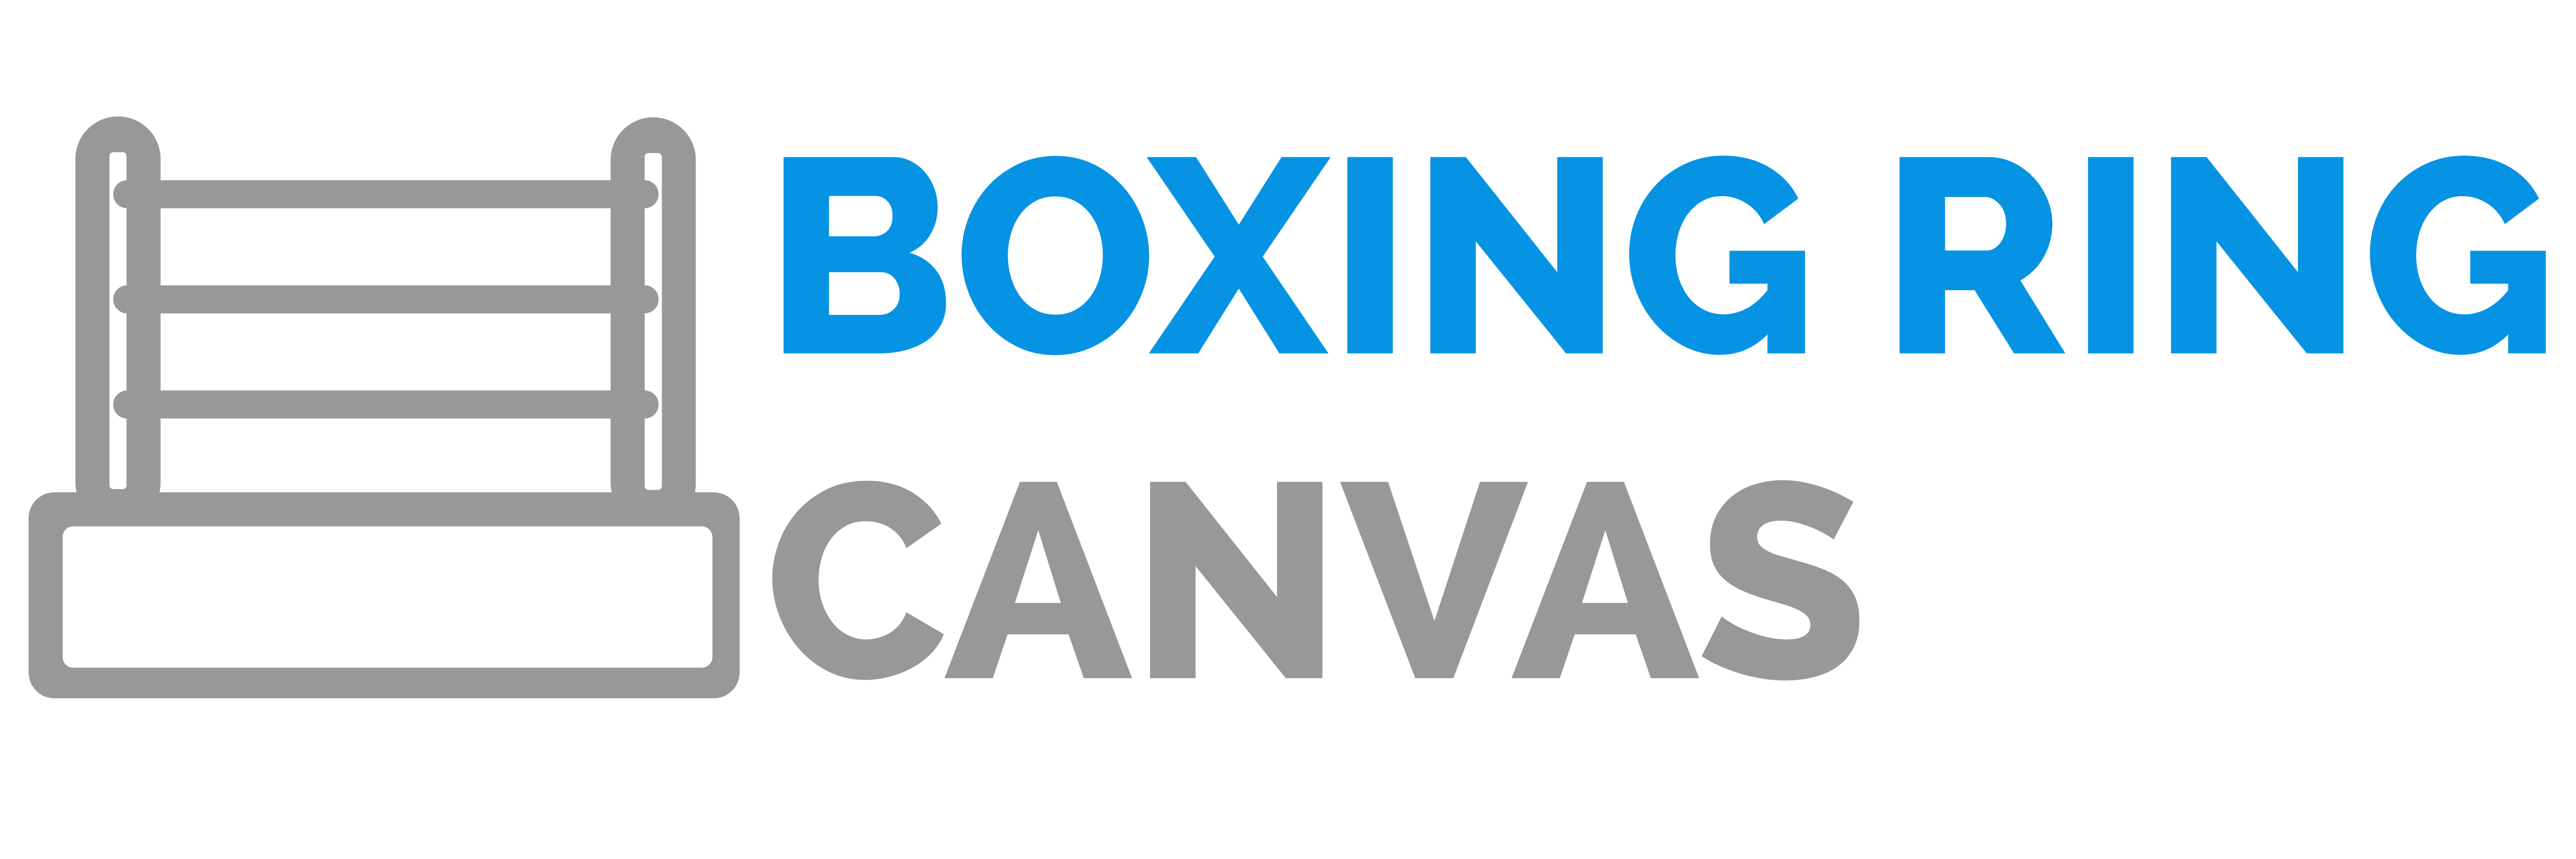 Boxing Ring Canvas - Radcliffe, Lancashire M26 4AD - 01617 248007 | ShowMeLocal.com